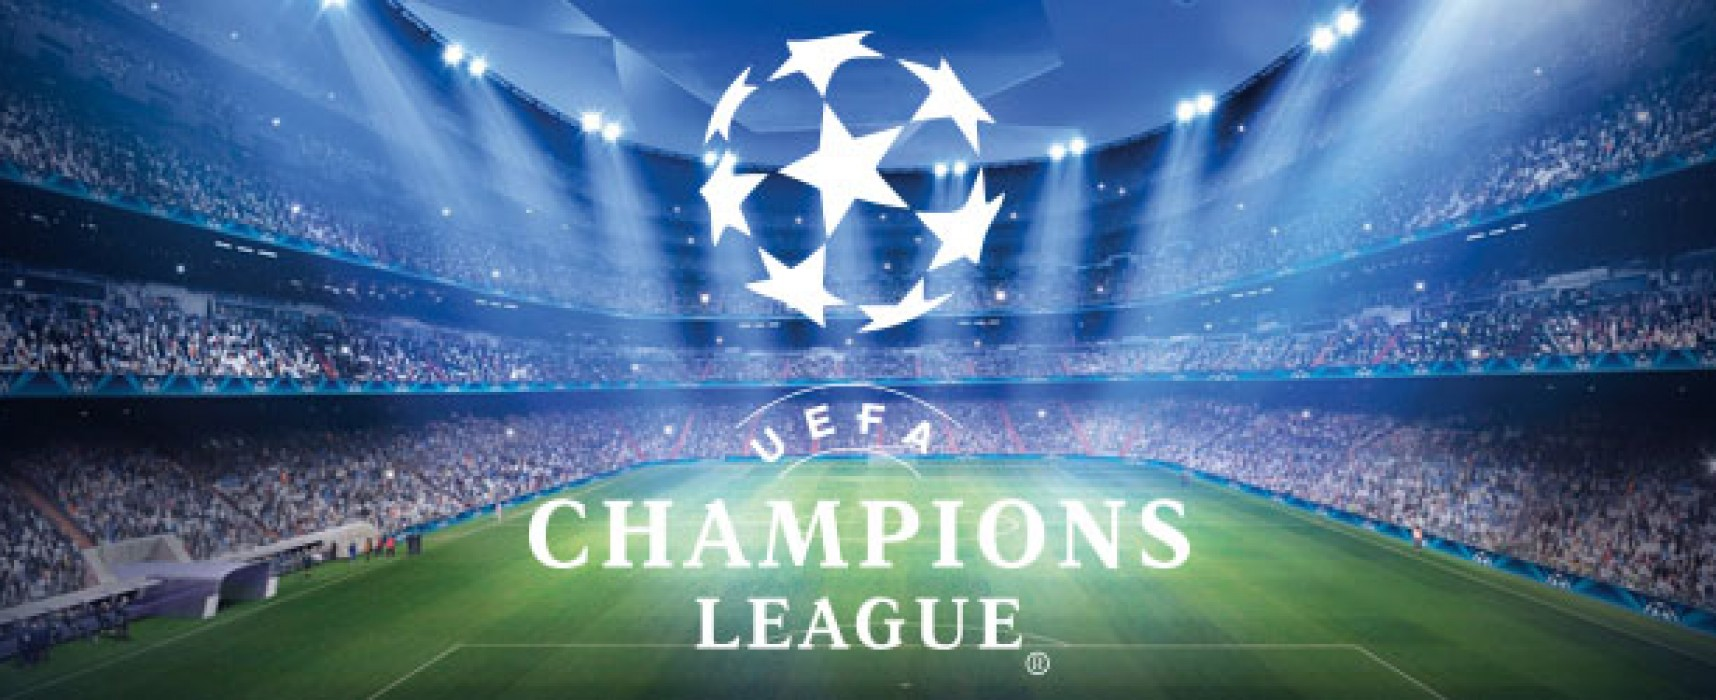 champions-league-logo1